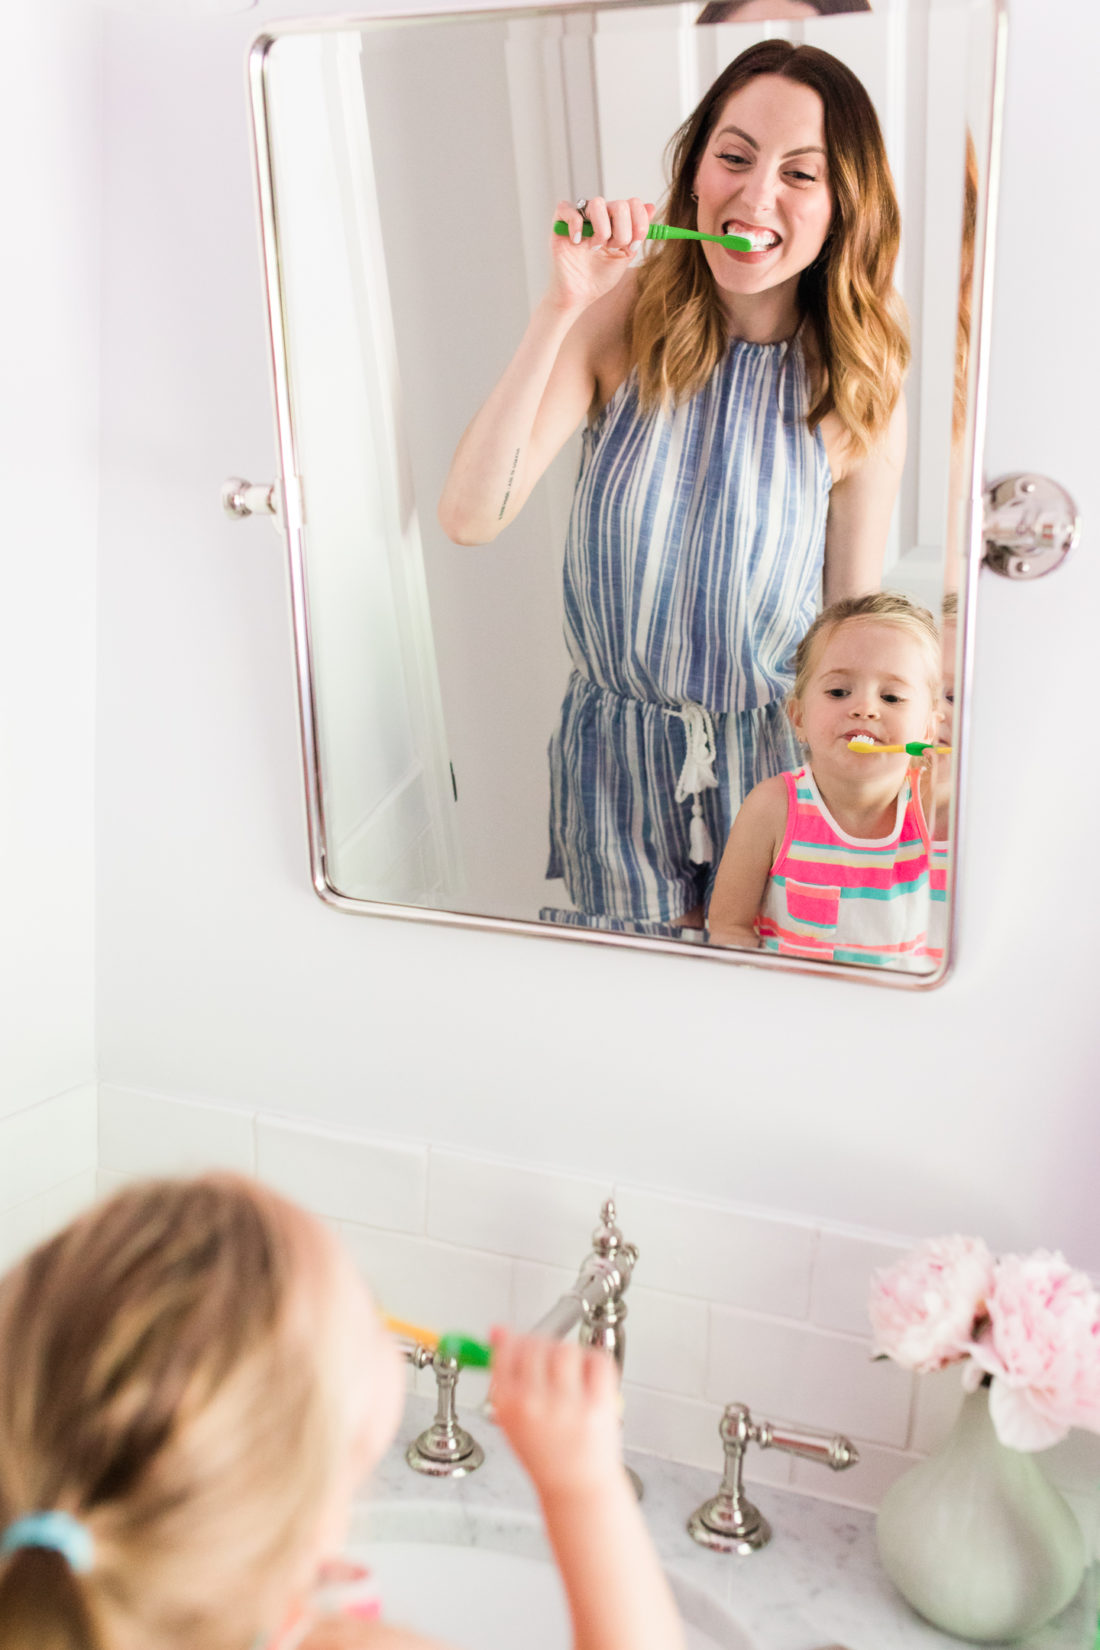 Eva Amurri Martino wears a blue and white striped romper and brushes her teeth with two year old daughter, Marlowe, in the bathroom of their Connecticut home